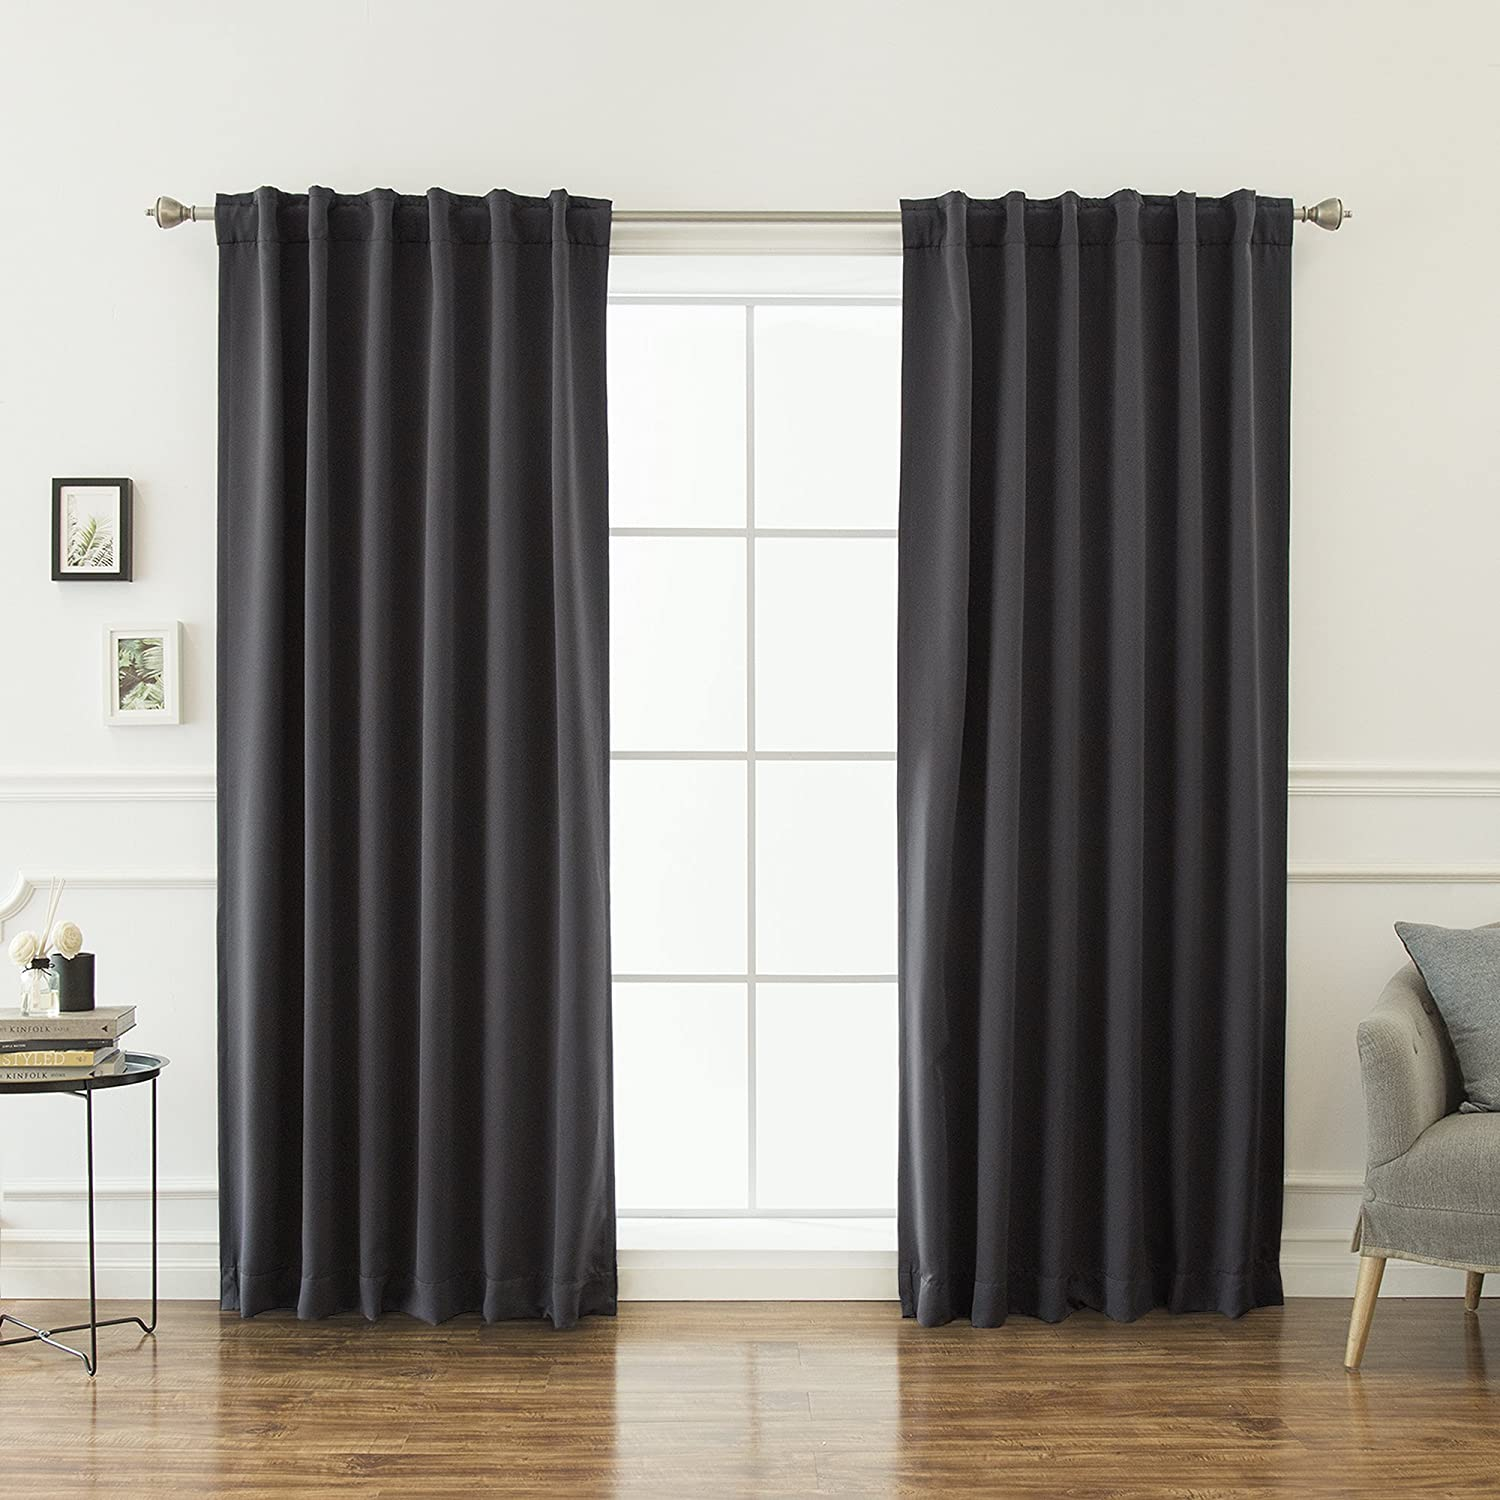 "Best Home Fashion Basic Thermal Insulated Blackout Curtains - Back Tab/Rod Pocket - Dark Grey - 52"" W x 96"" L – Tie Backs Included (Set of 2 Panels)"